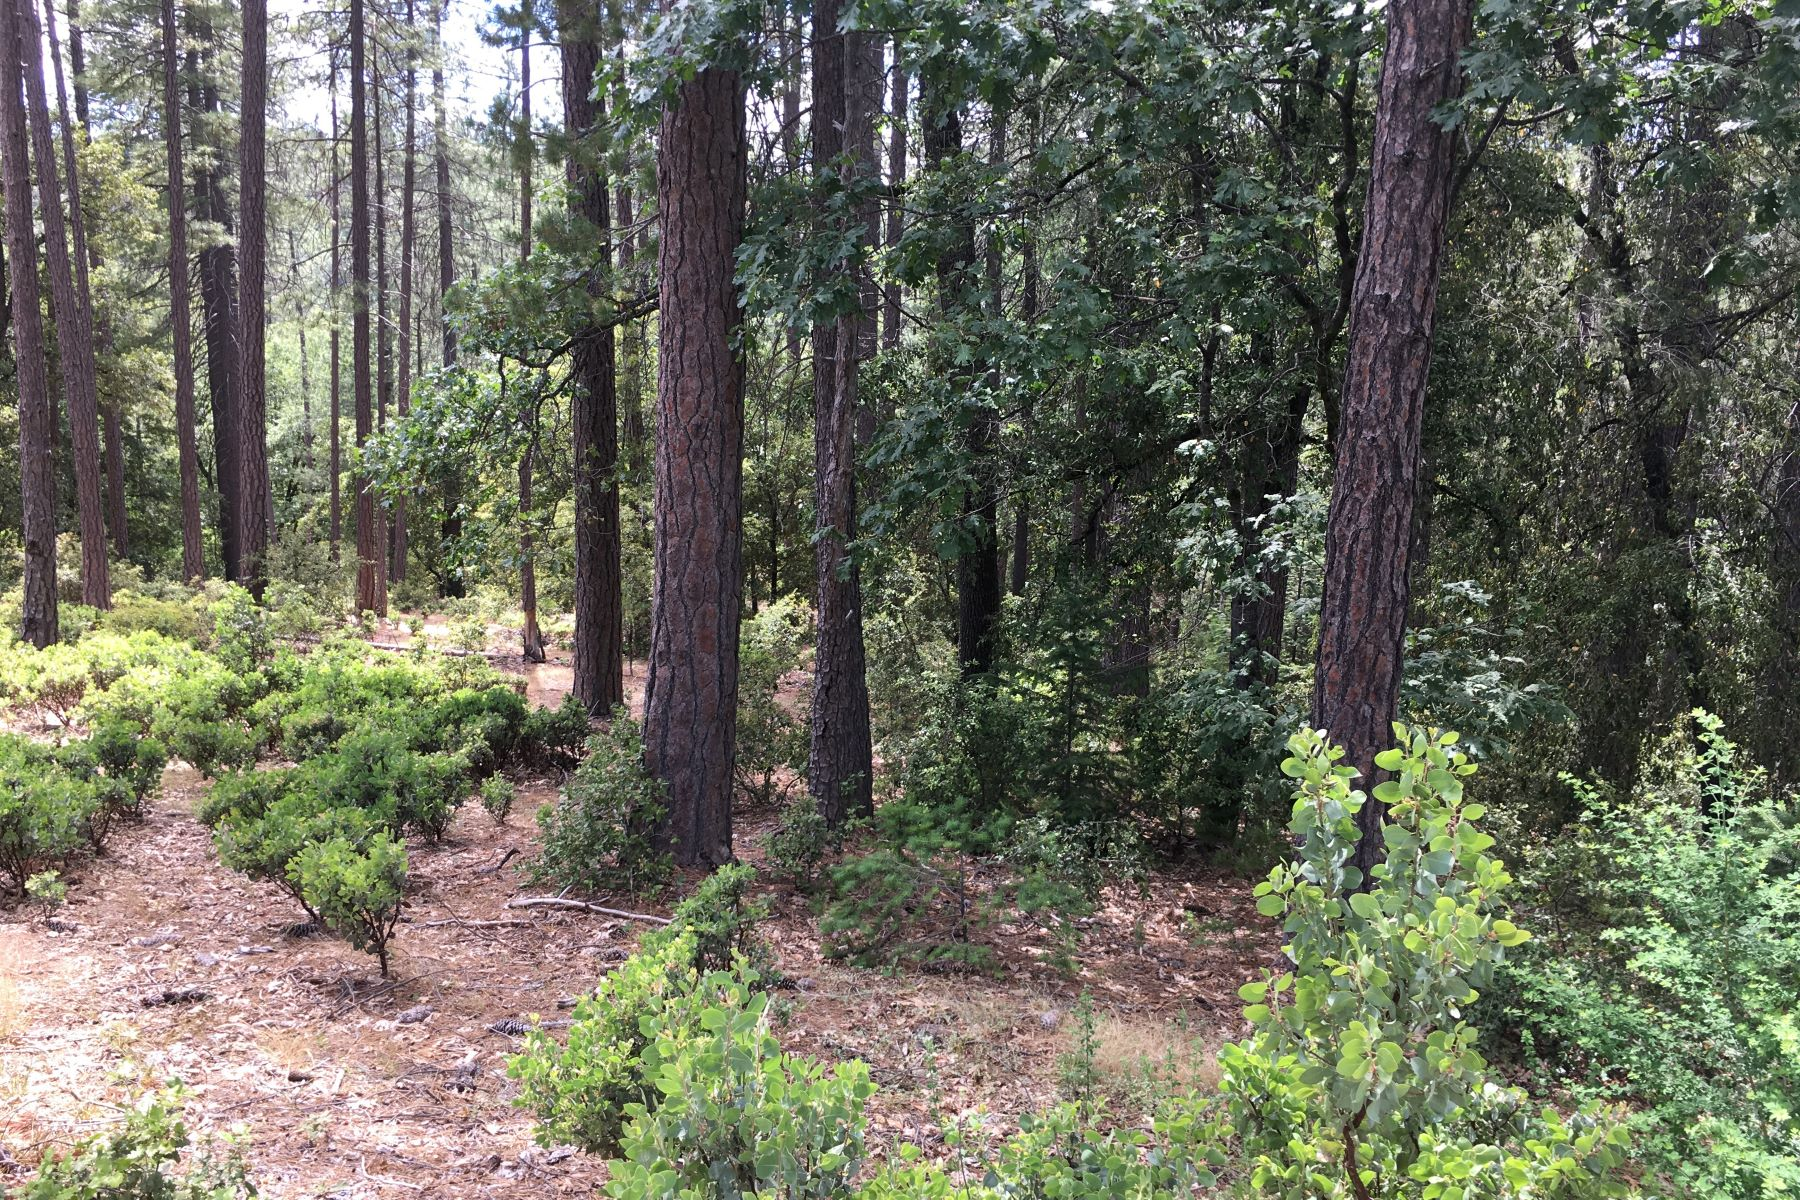 Land for Sale at Beautiful 2.3 Acre Secluded Lot in Ponderosa Ridge 13475 Paintbrush Lane Pine Grove, California 95665 United States